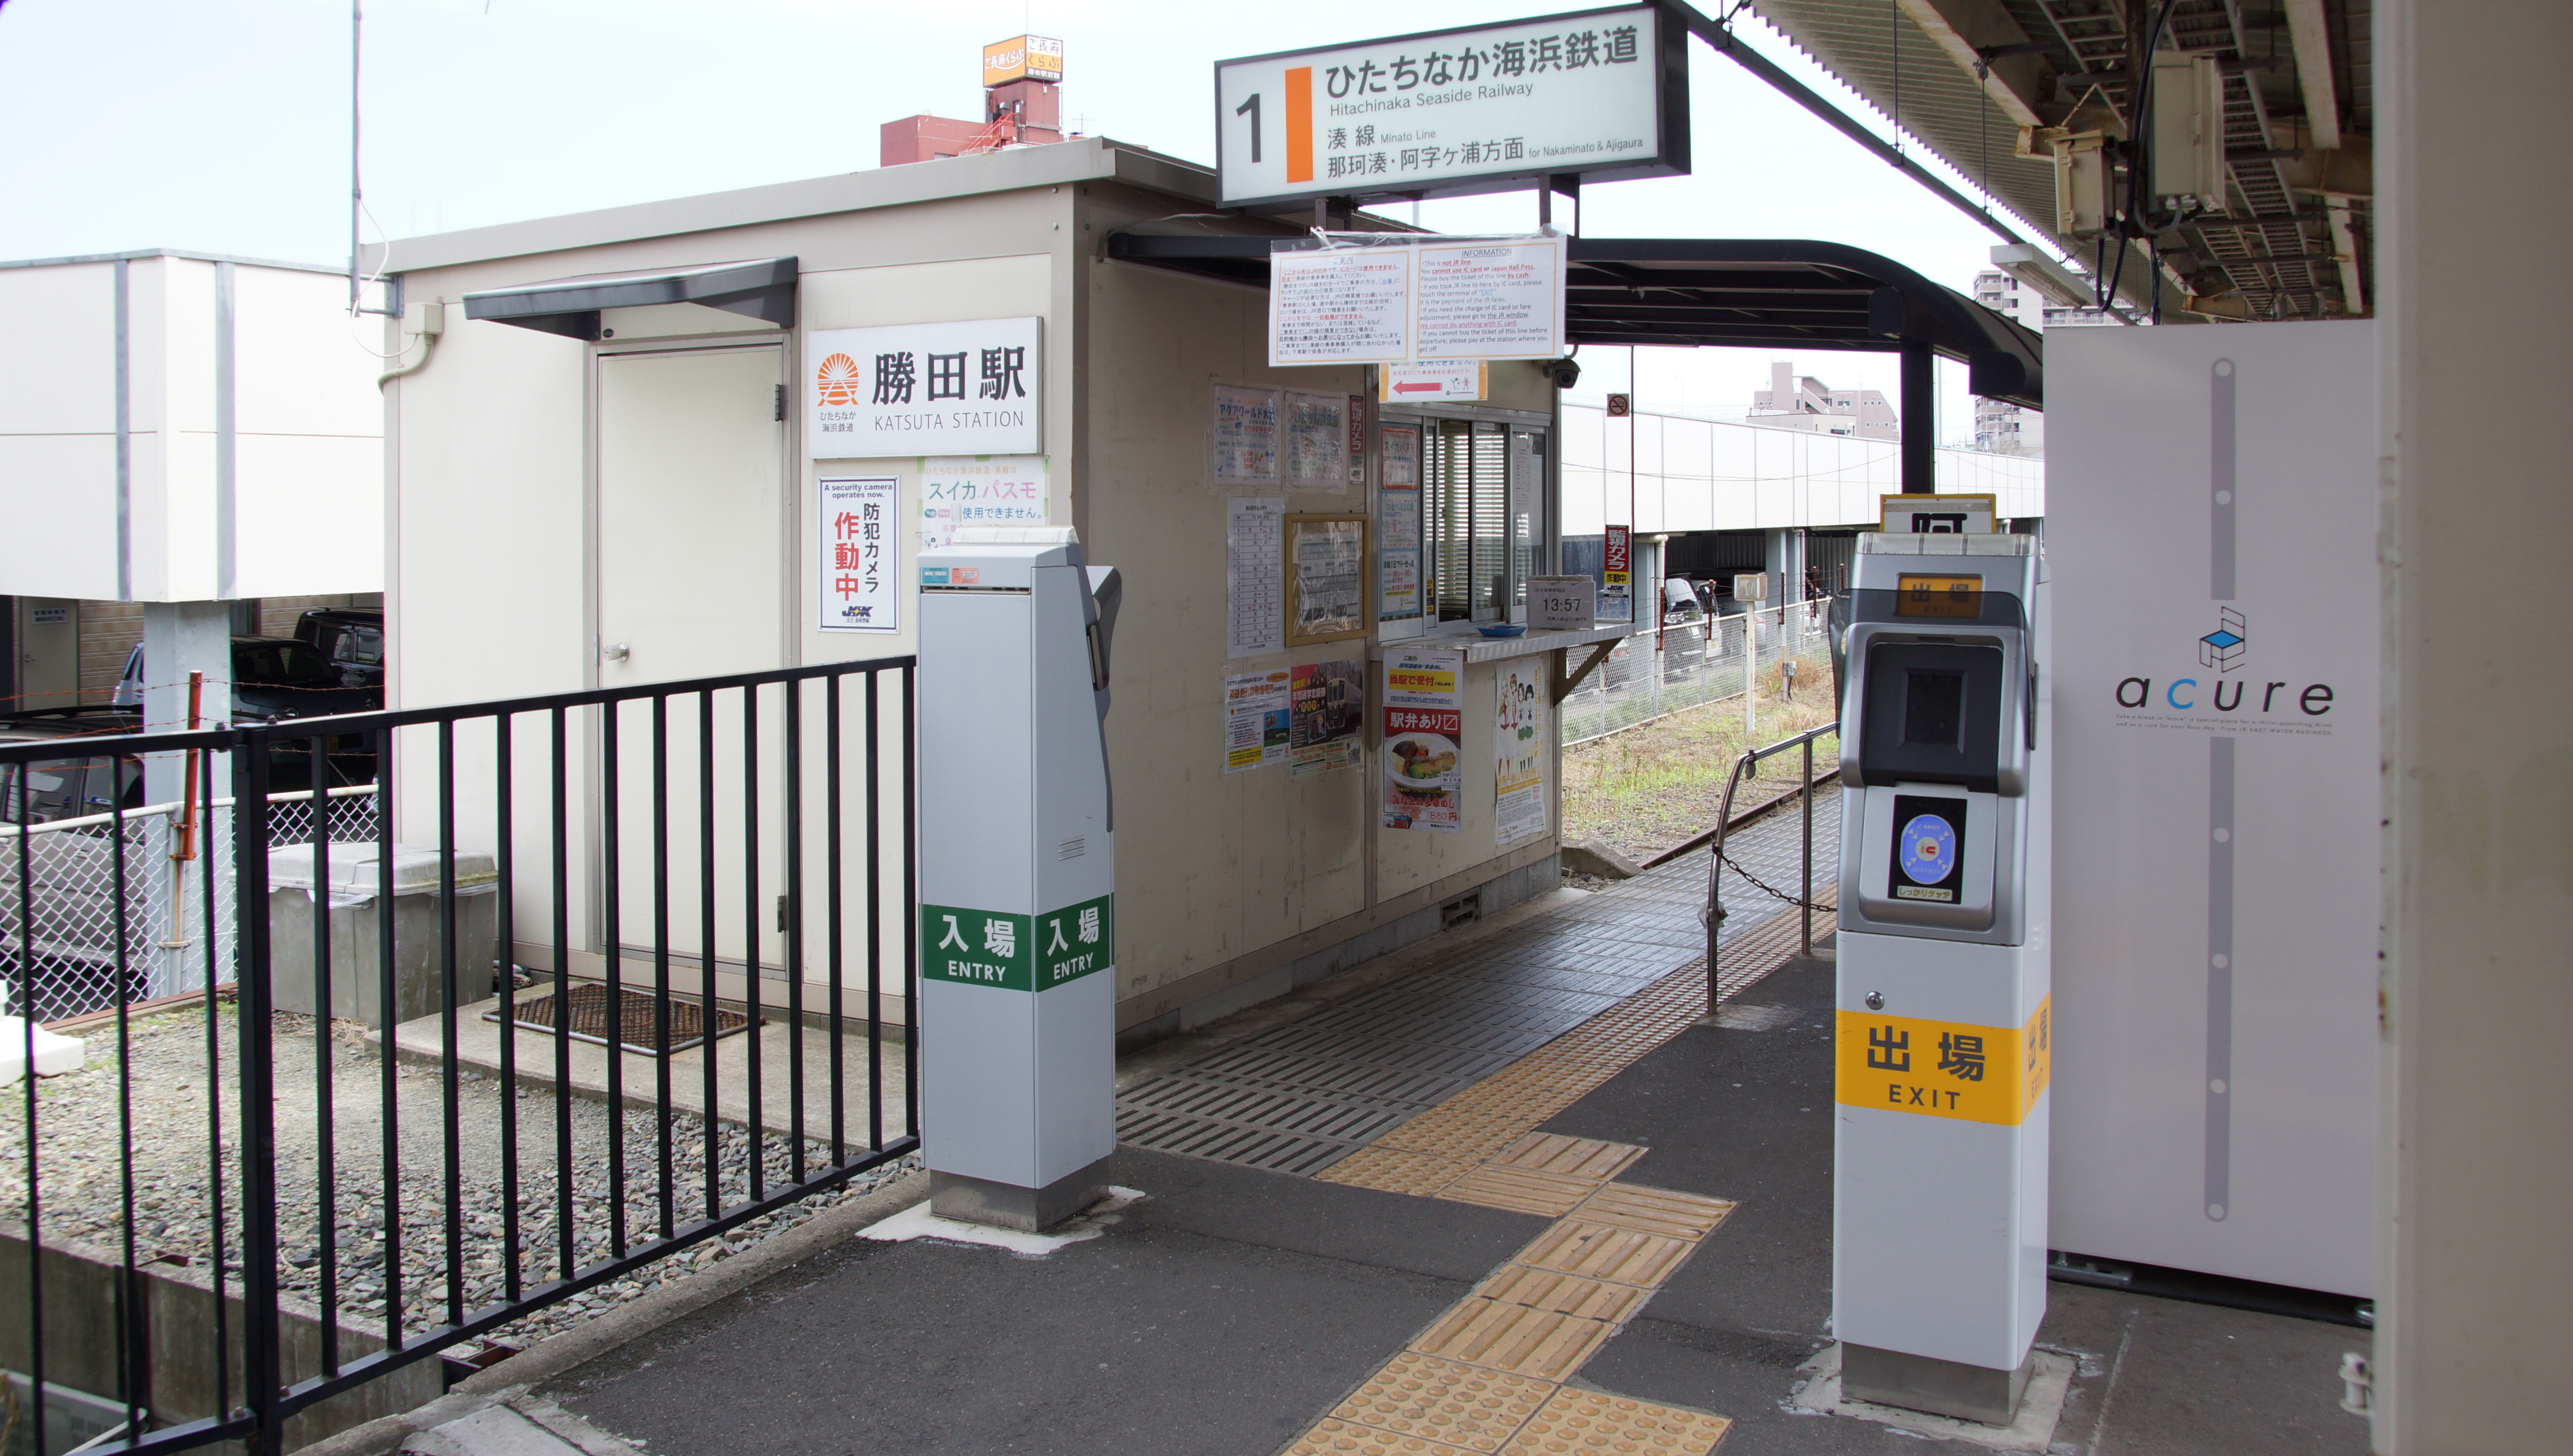 https://upload.wikimedia.org/wikipedia/commons/5/50/Katsuta_Station_Hitachinaka_Seaside_Railway_platform_entrance_20170603_%282%29.jpg